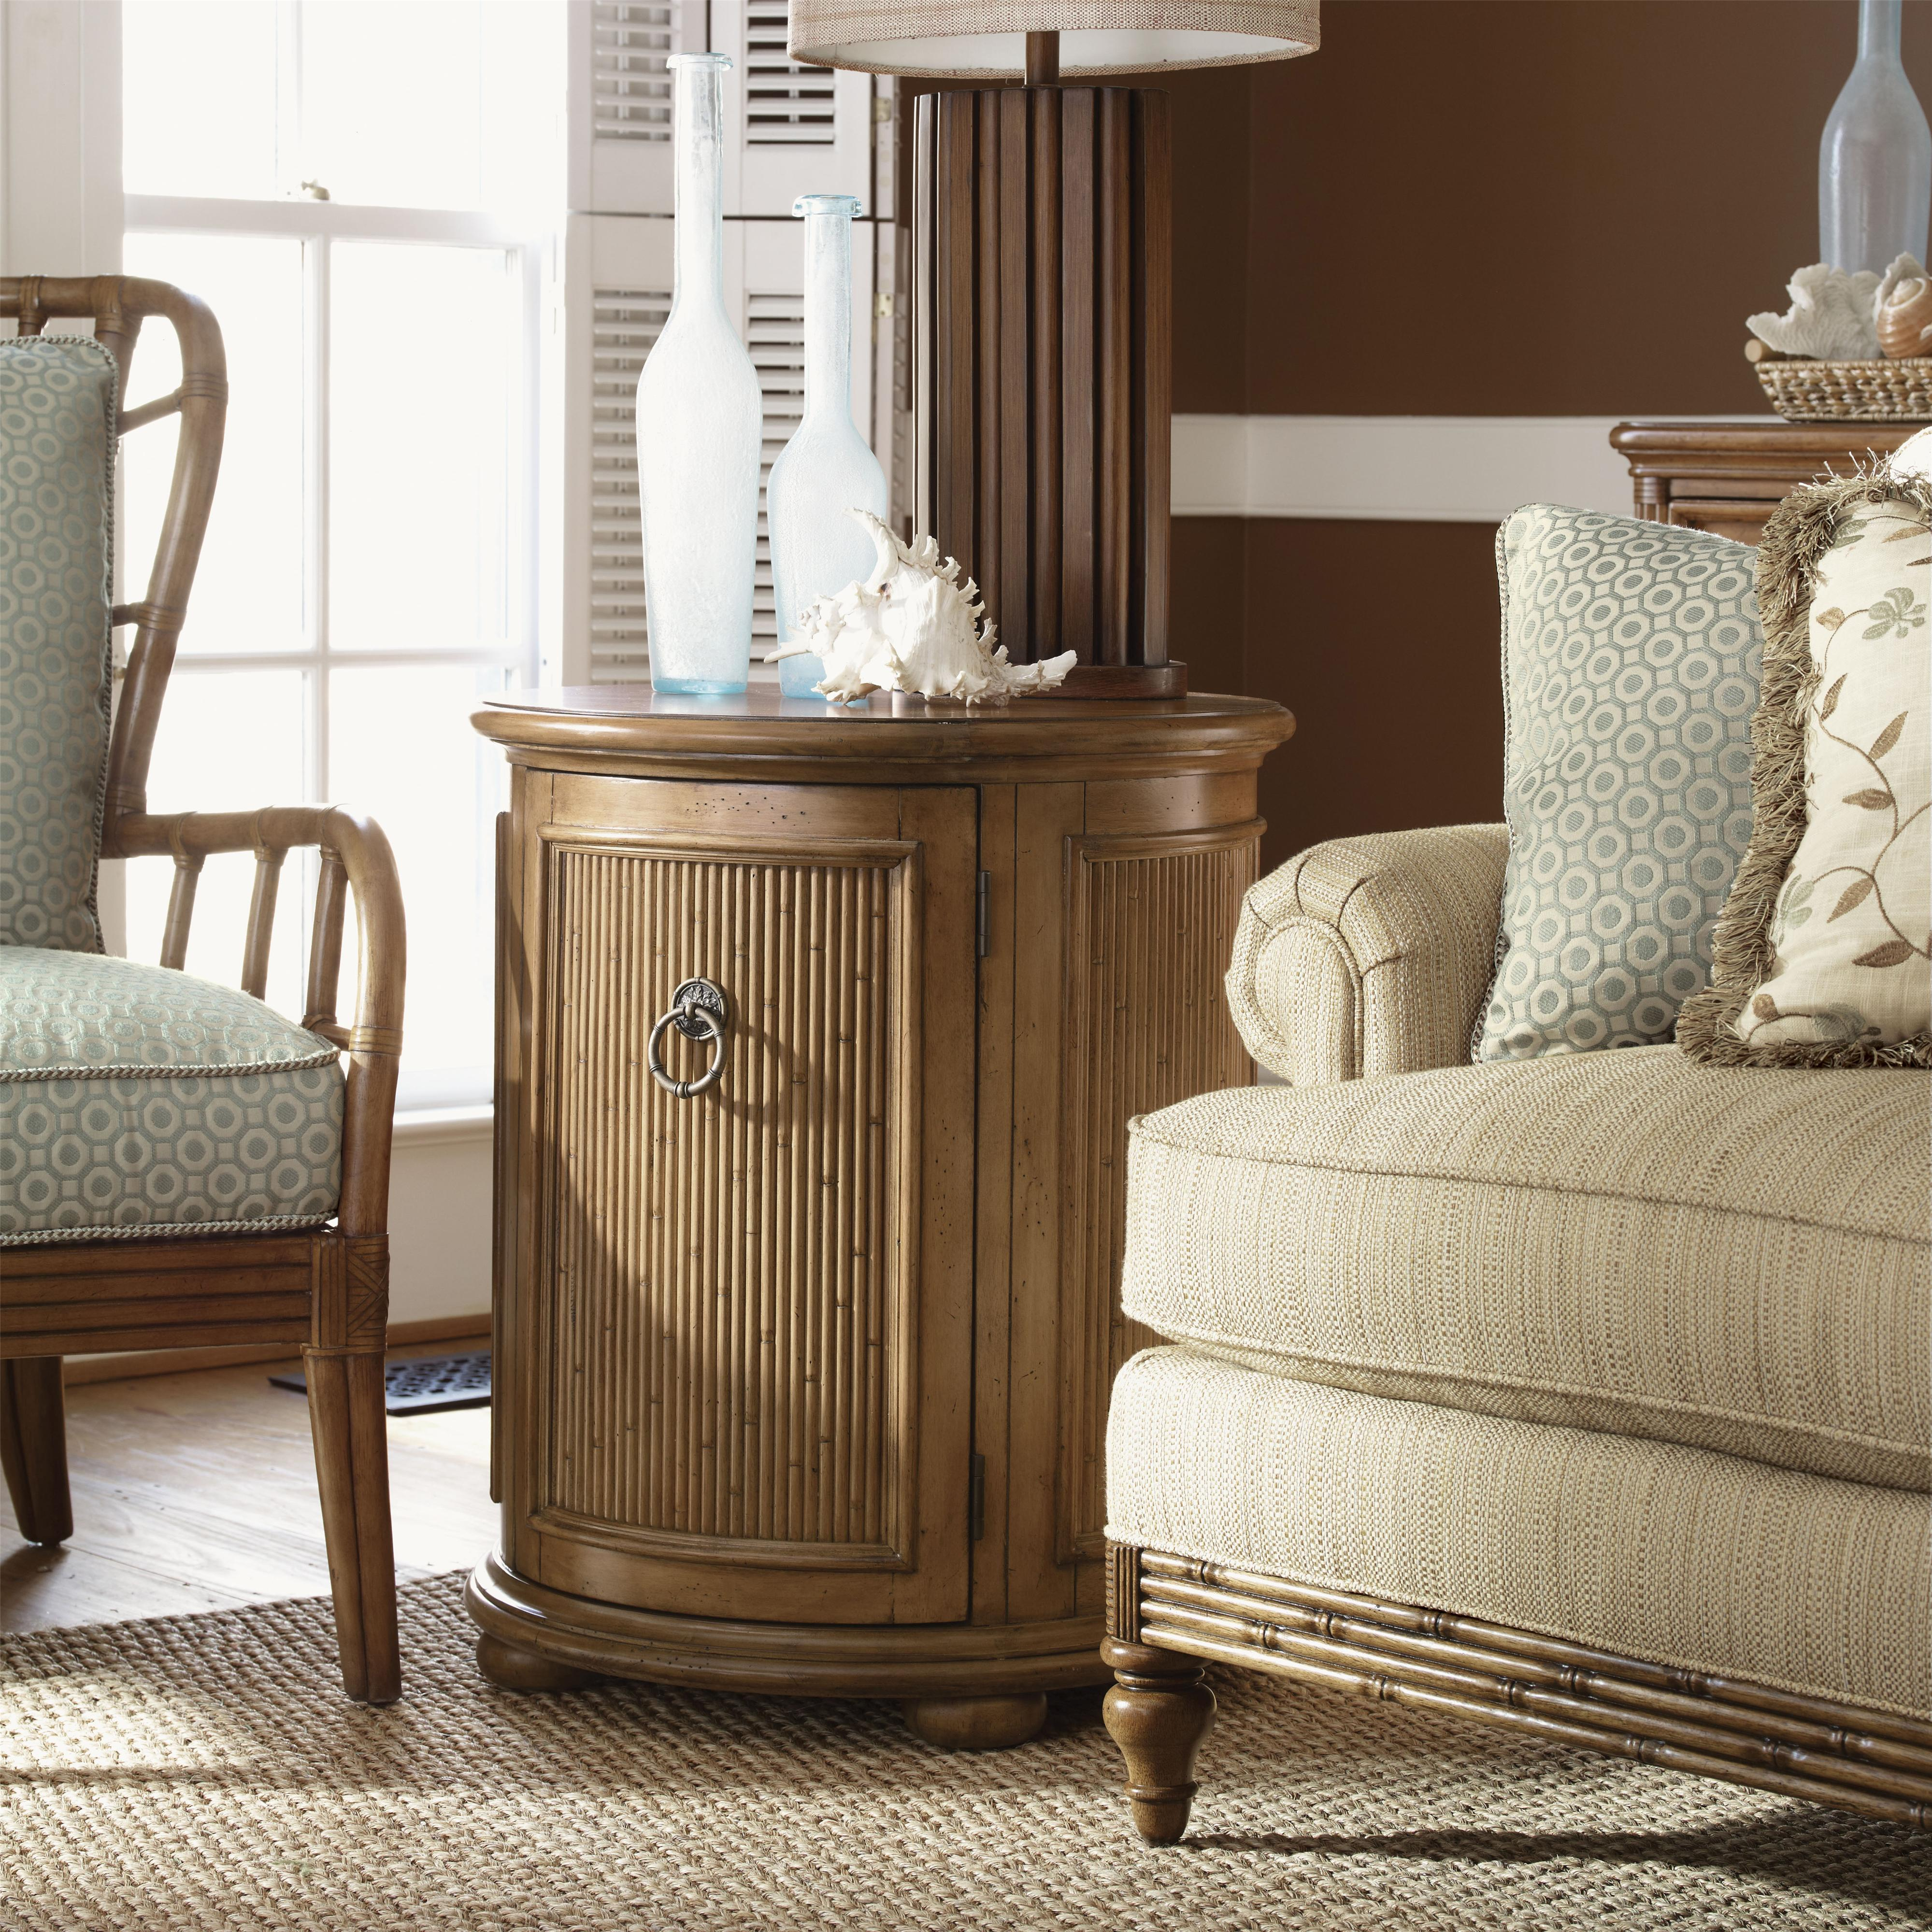 Tommy bahama home beach house round drum style pompano accent table with one door one shelf Badcock home furniture more pompano beach fl